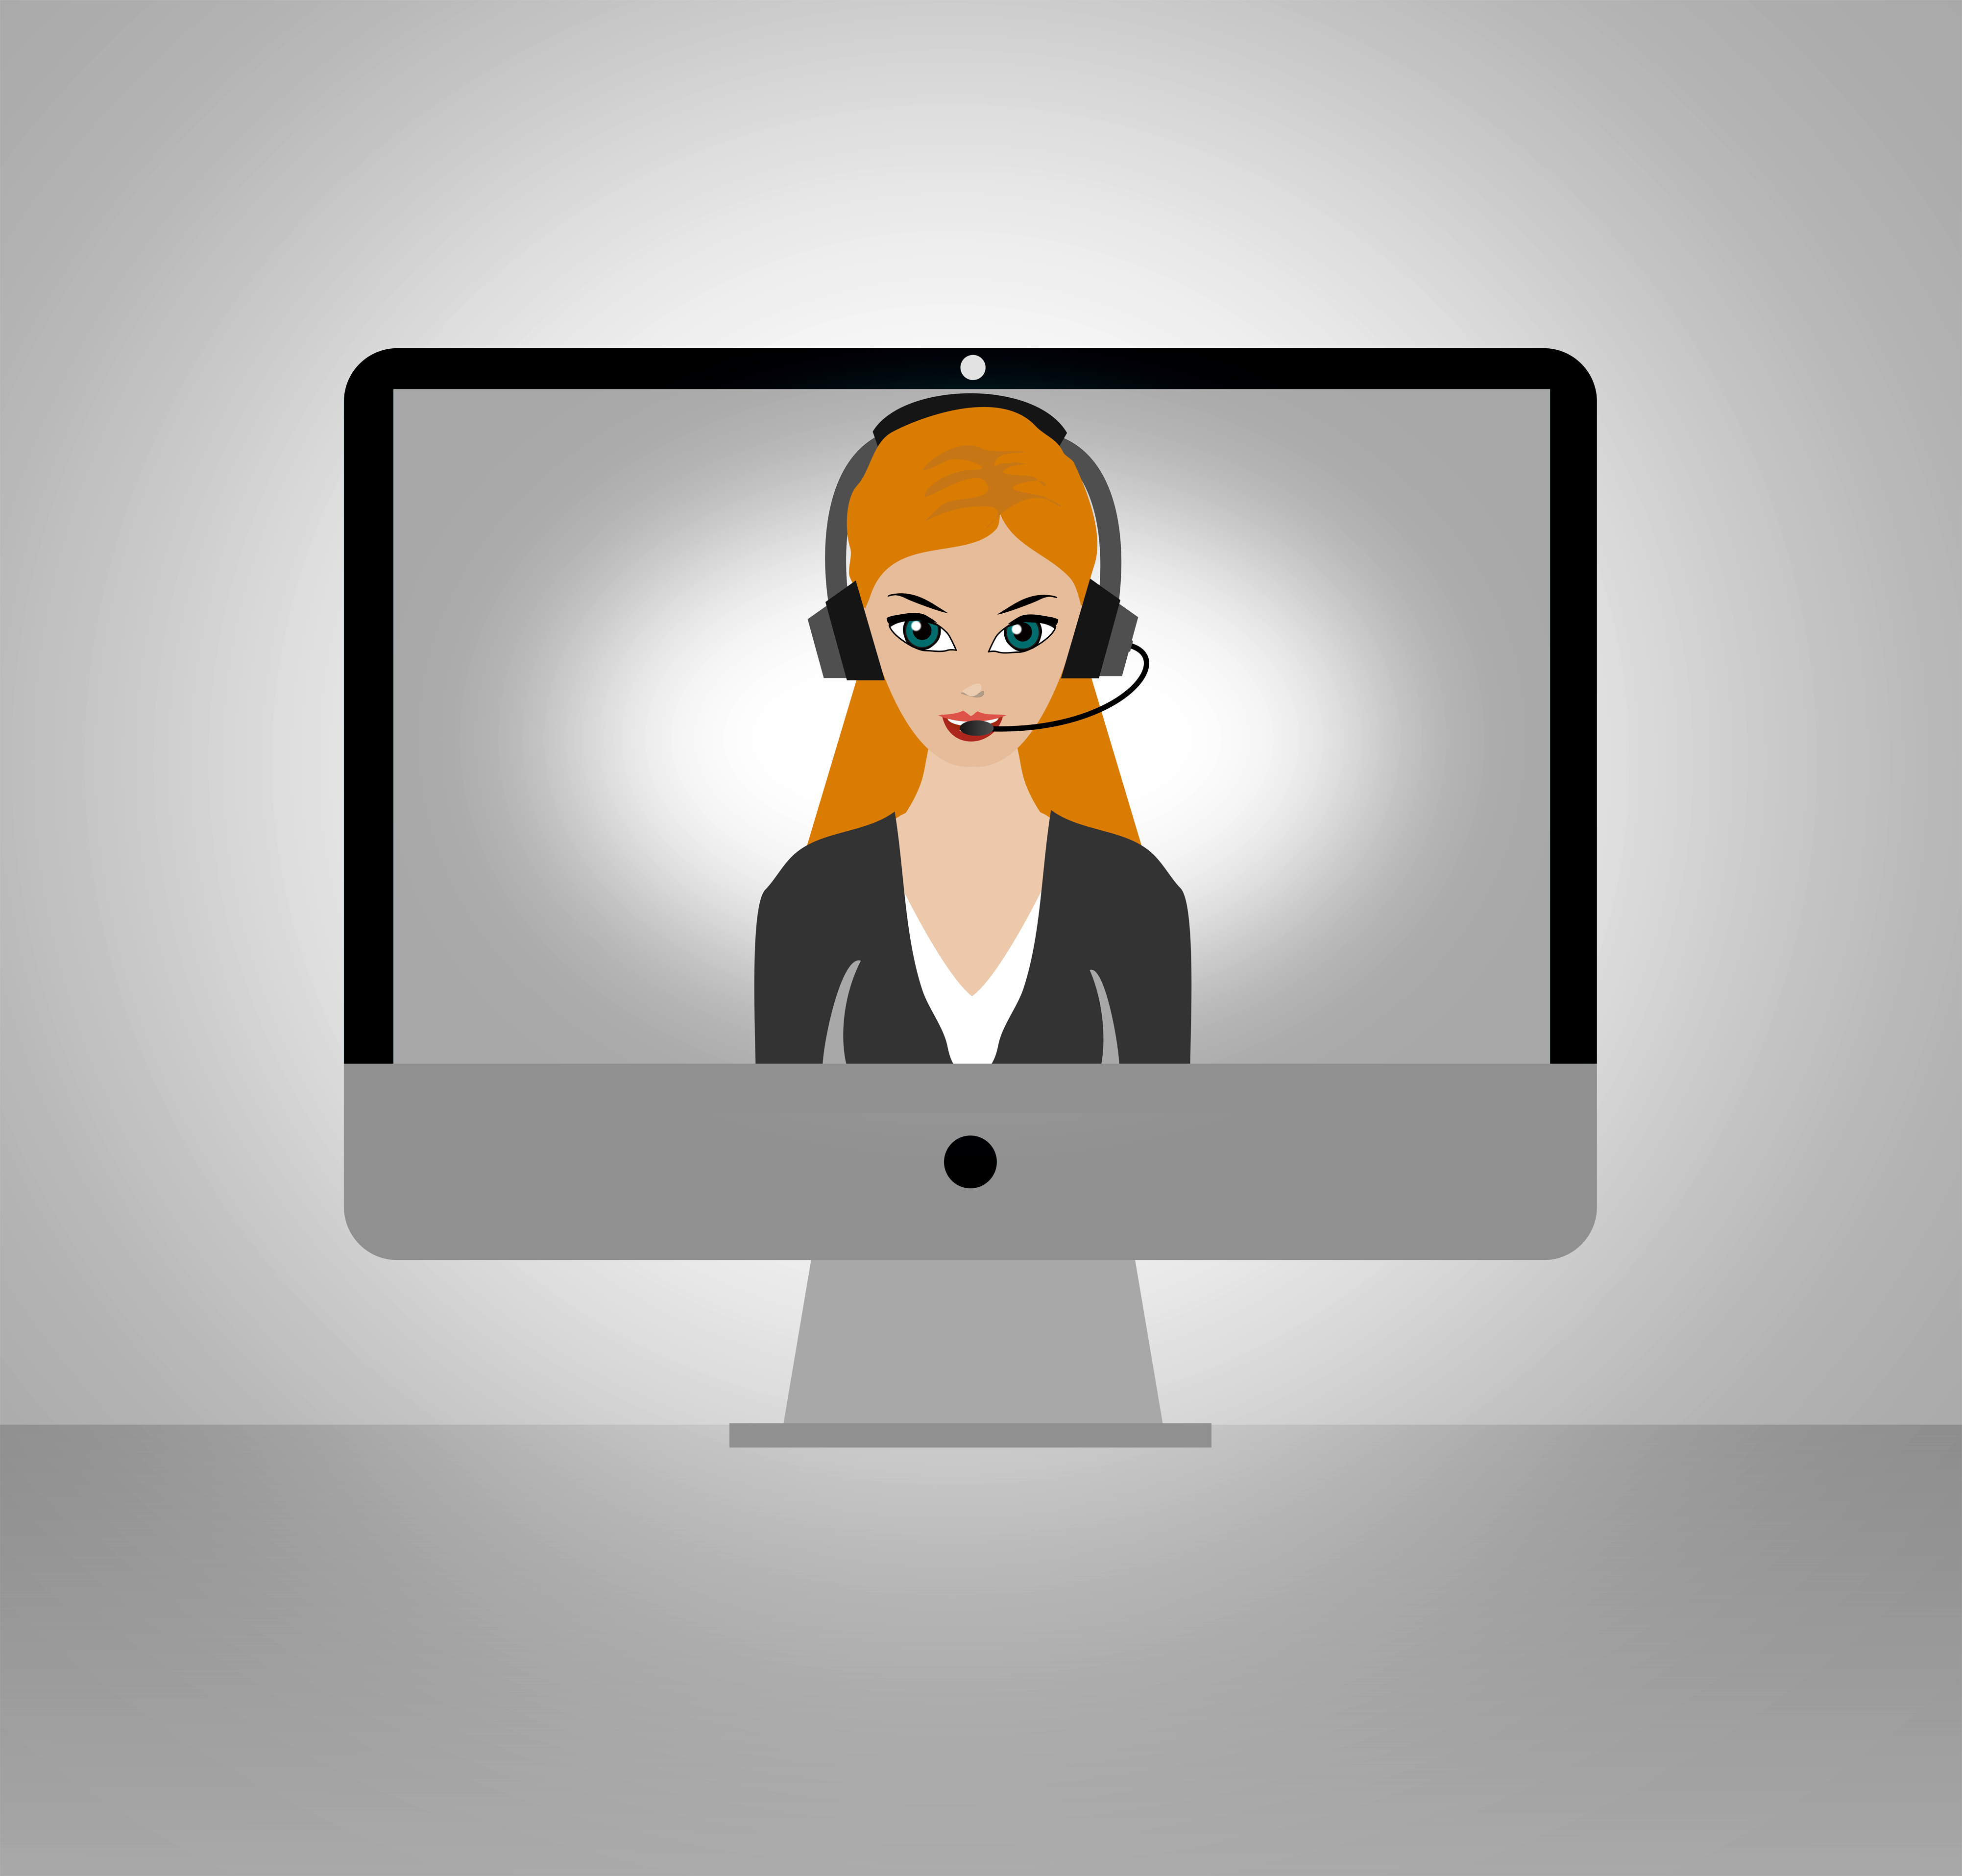 Call center girl - remote assistance concept photo